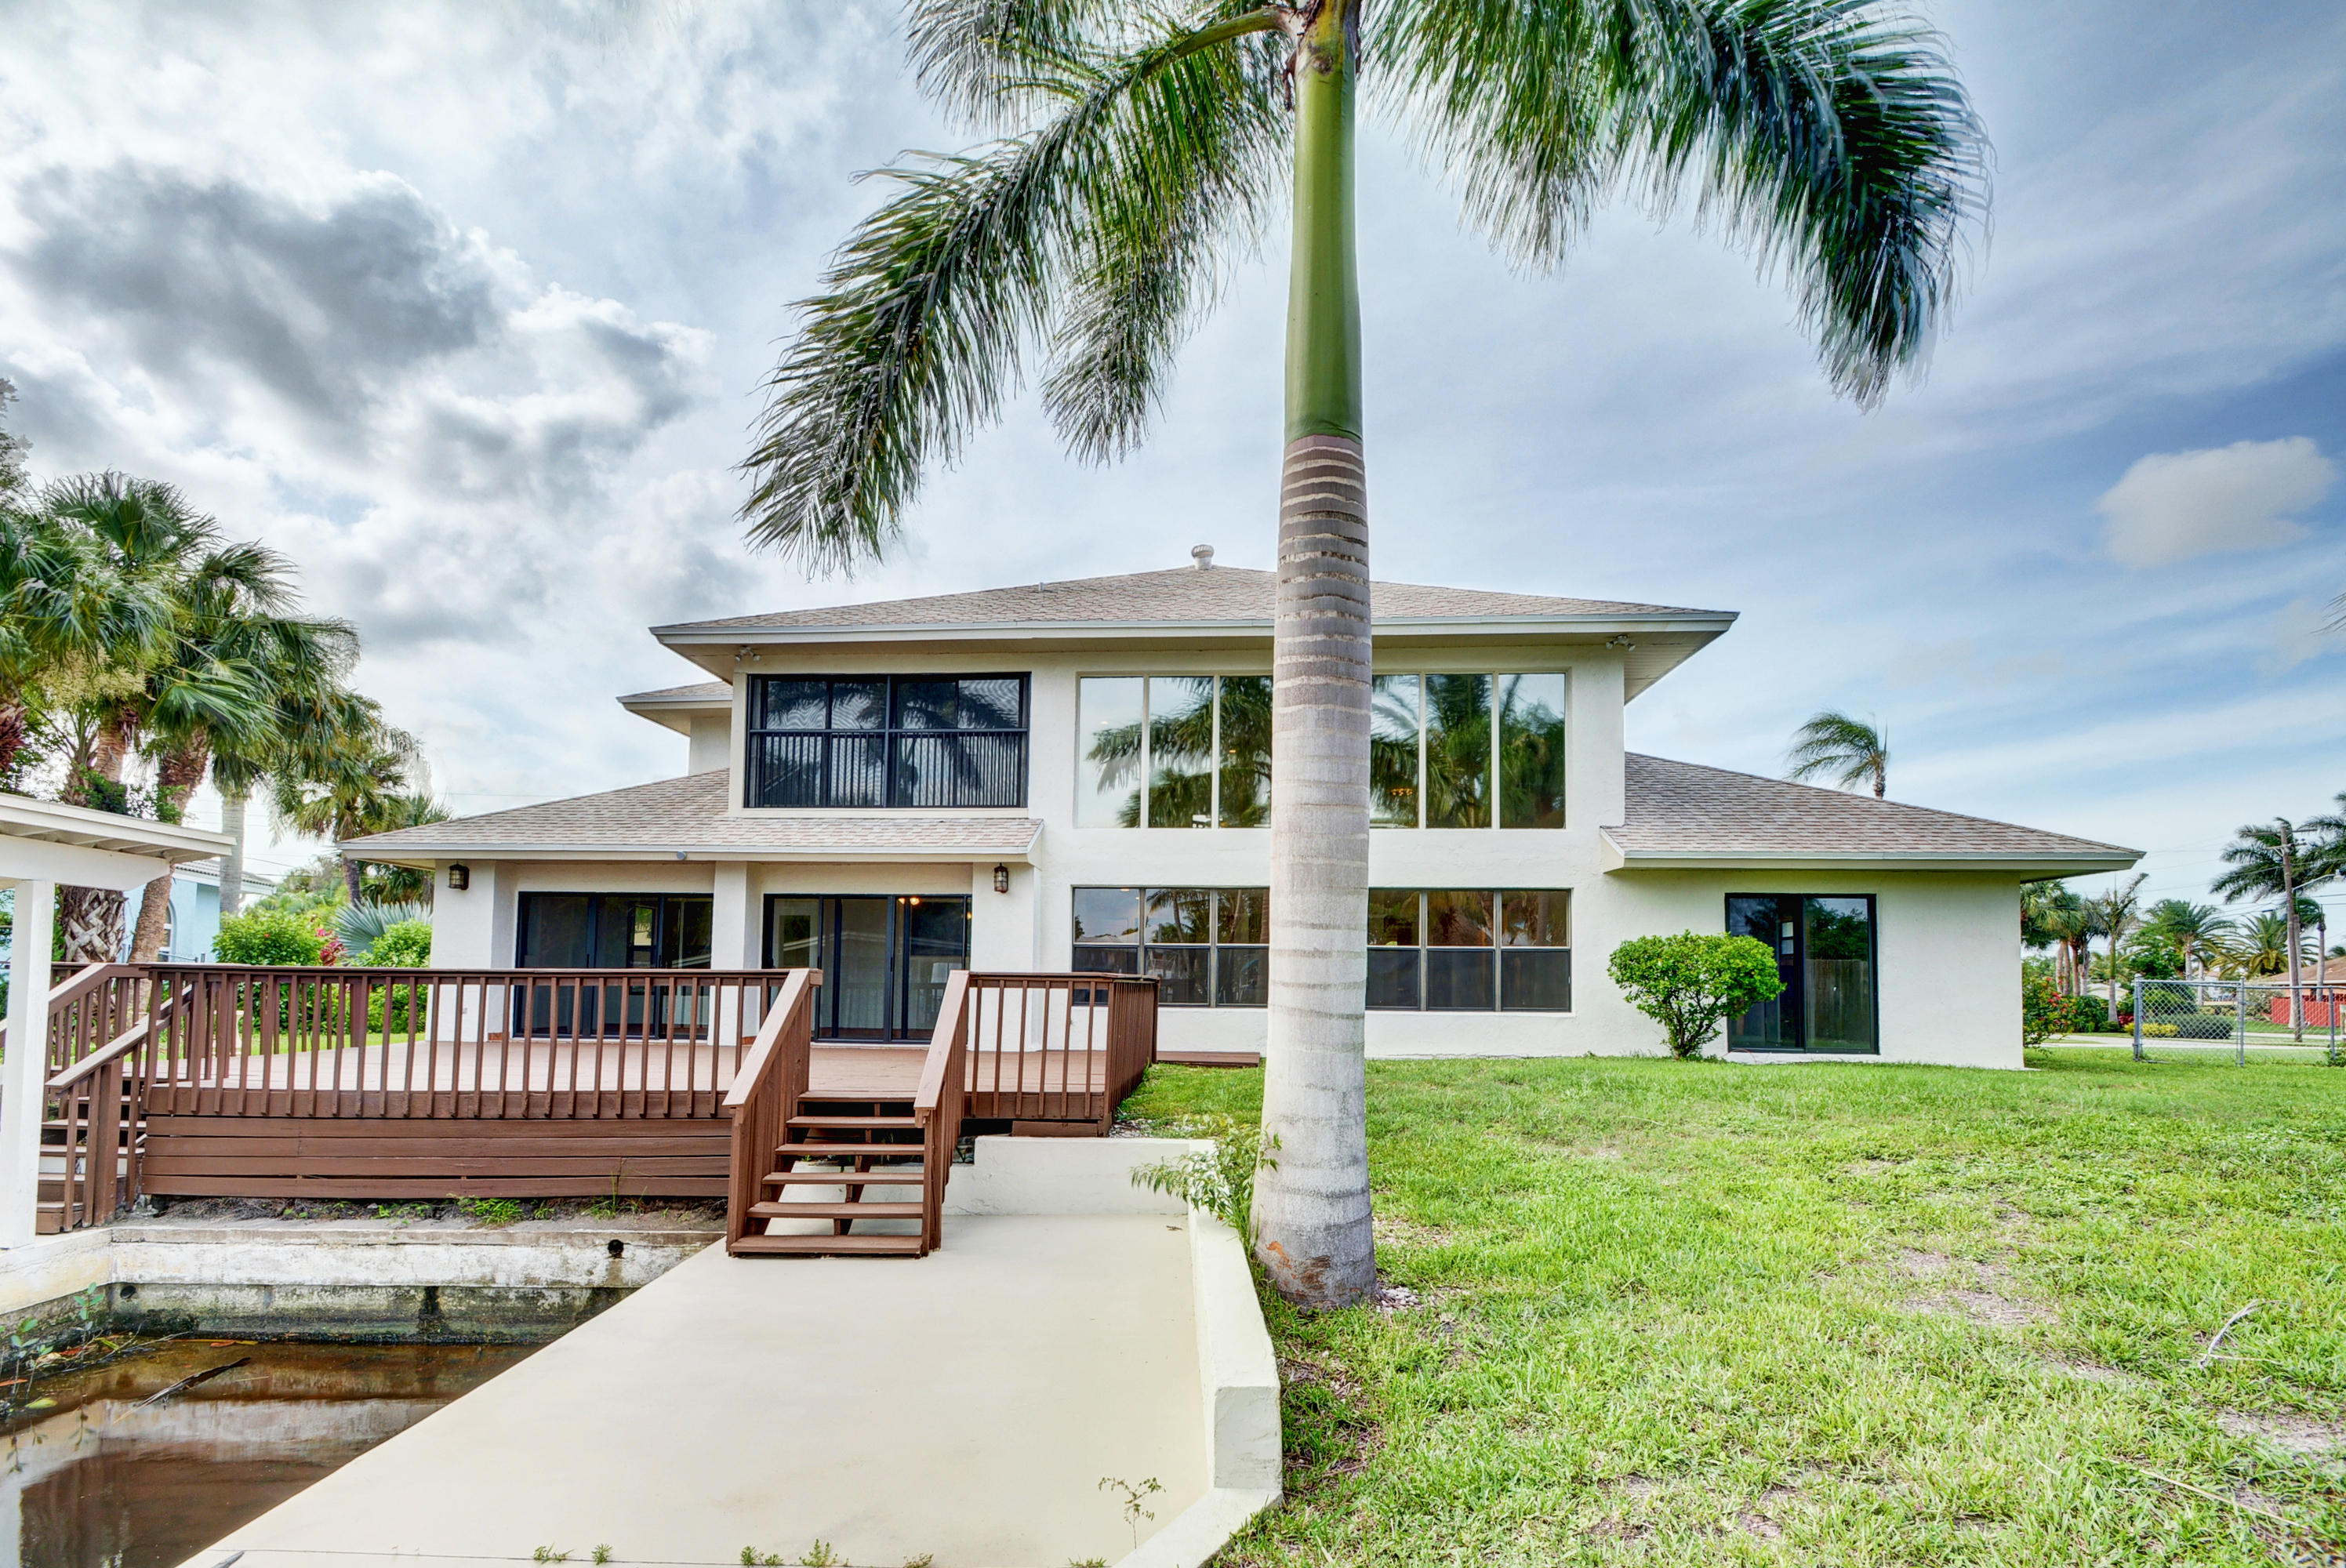 SEAGATE HARBOR PALM CITY REAL ESTATE